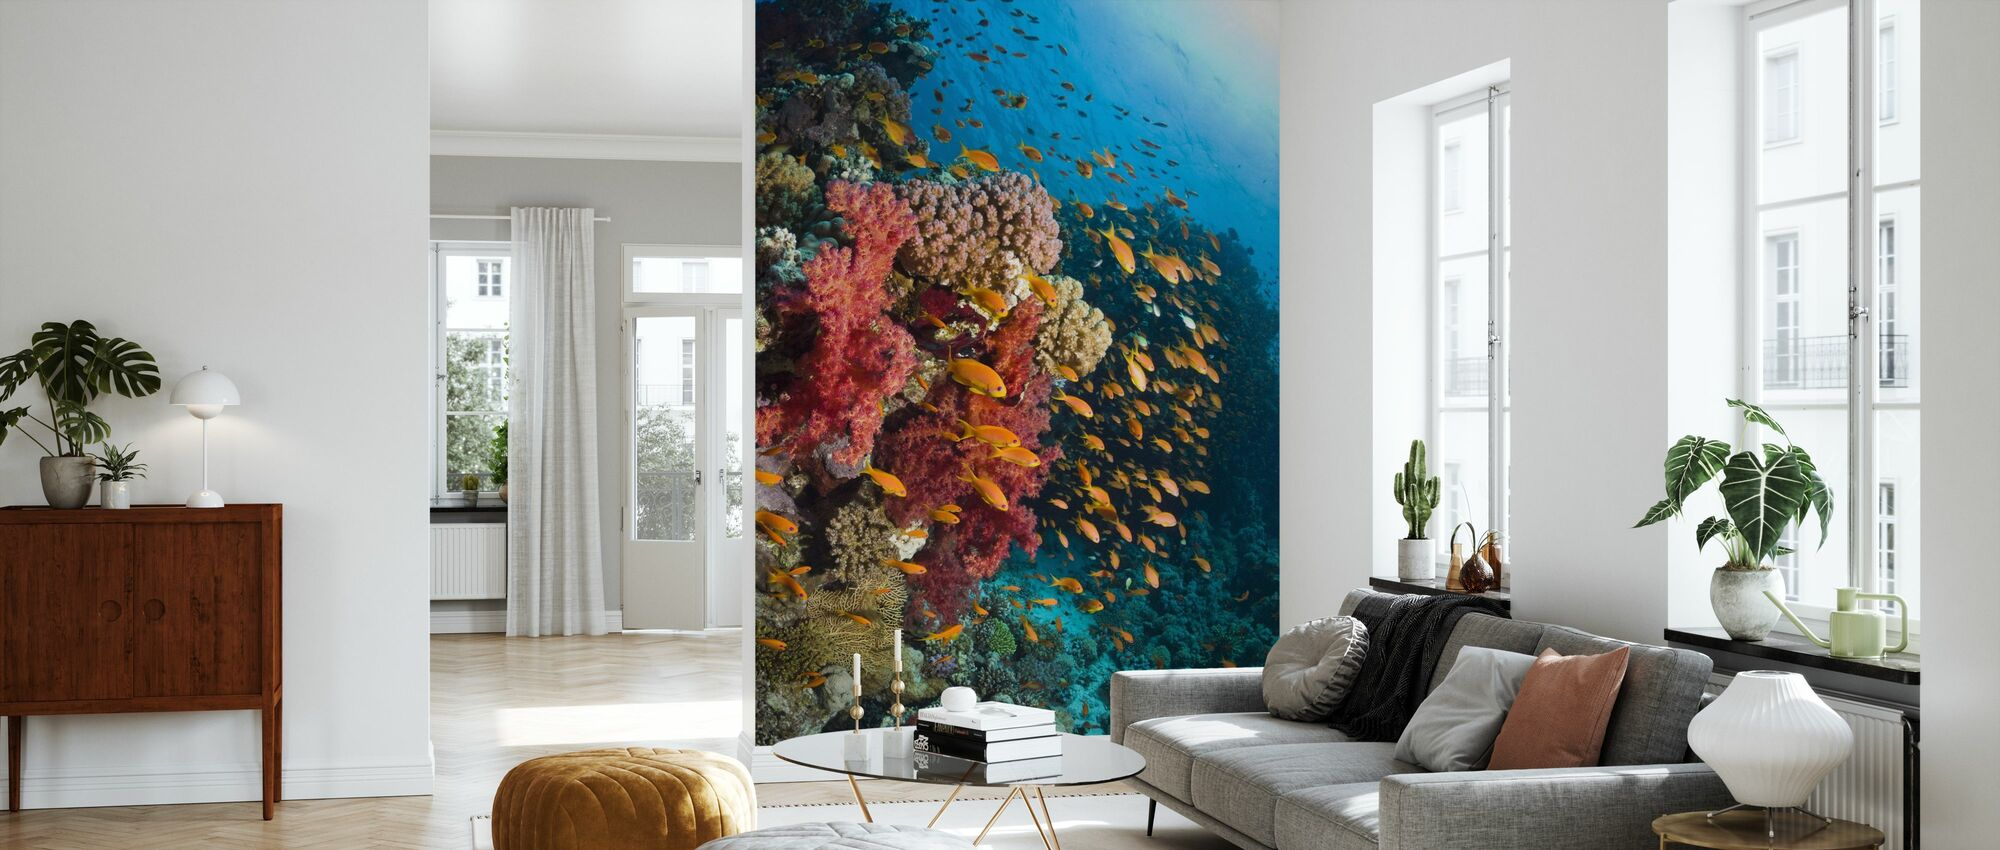 Soft Corals - Wallpaper - Living Room